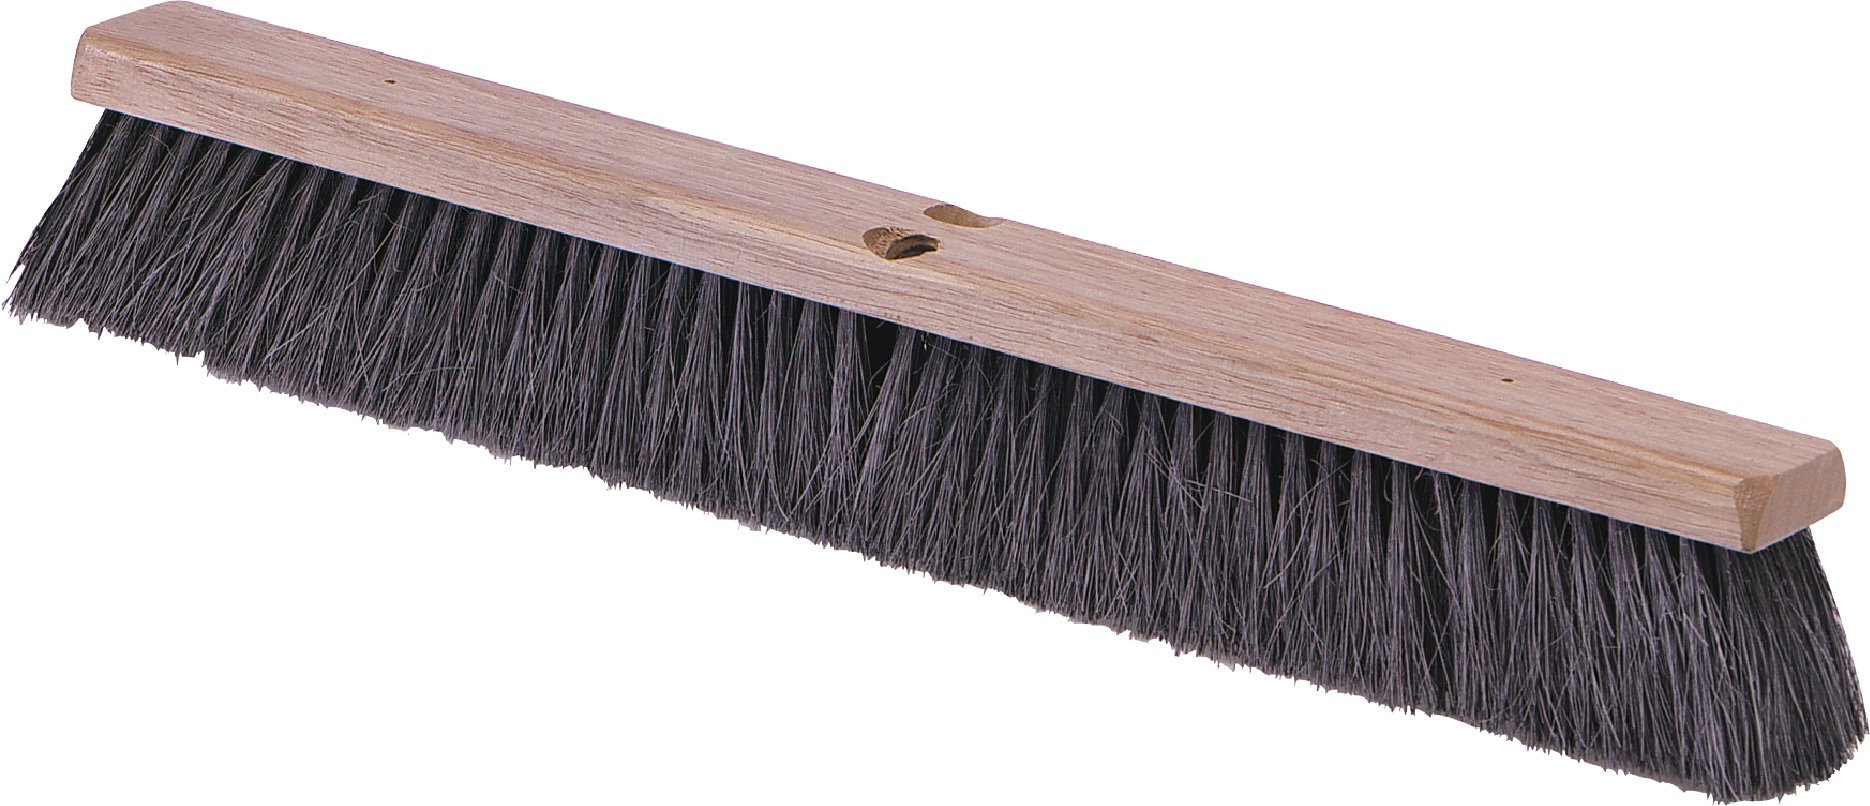 Carlisle 4505103 Flo-Pac Fine/Medium Floor Sweep, Tampico Bristles, 14'' Block Size, 3'' Bristle Trim, Black by Carlisle